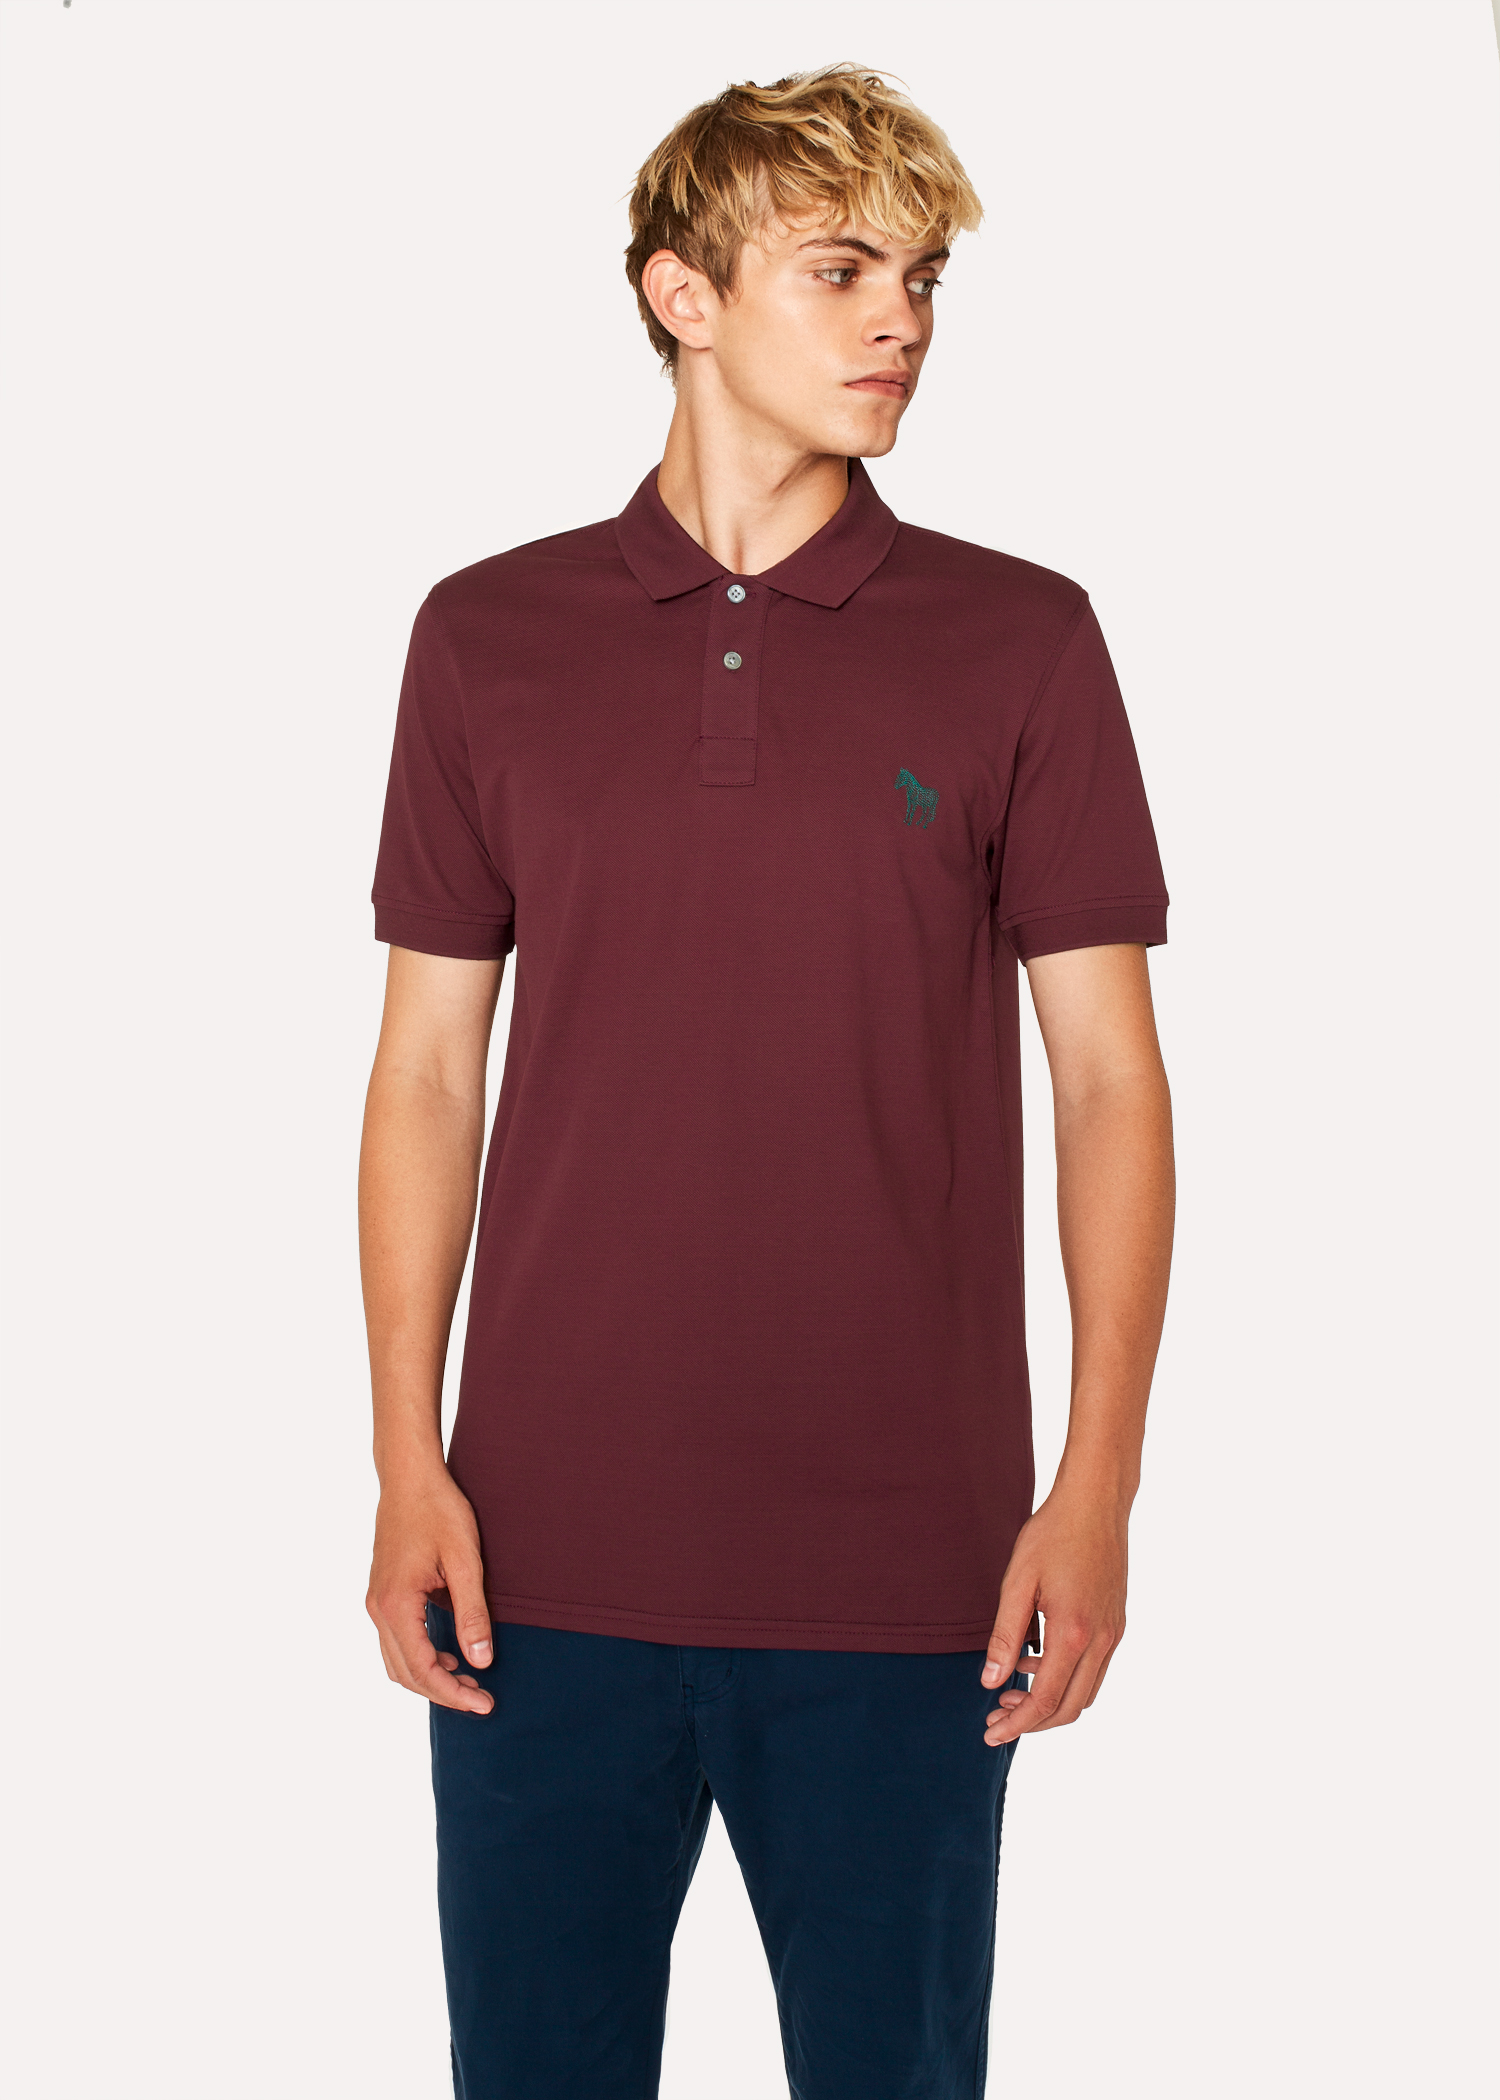 Mens Slim Fit Burgundy Embroidered Zebra Polo Shirt Paul Smith Us